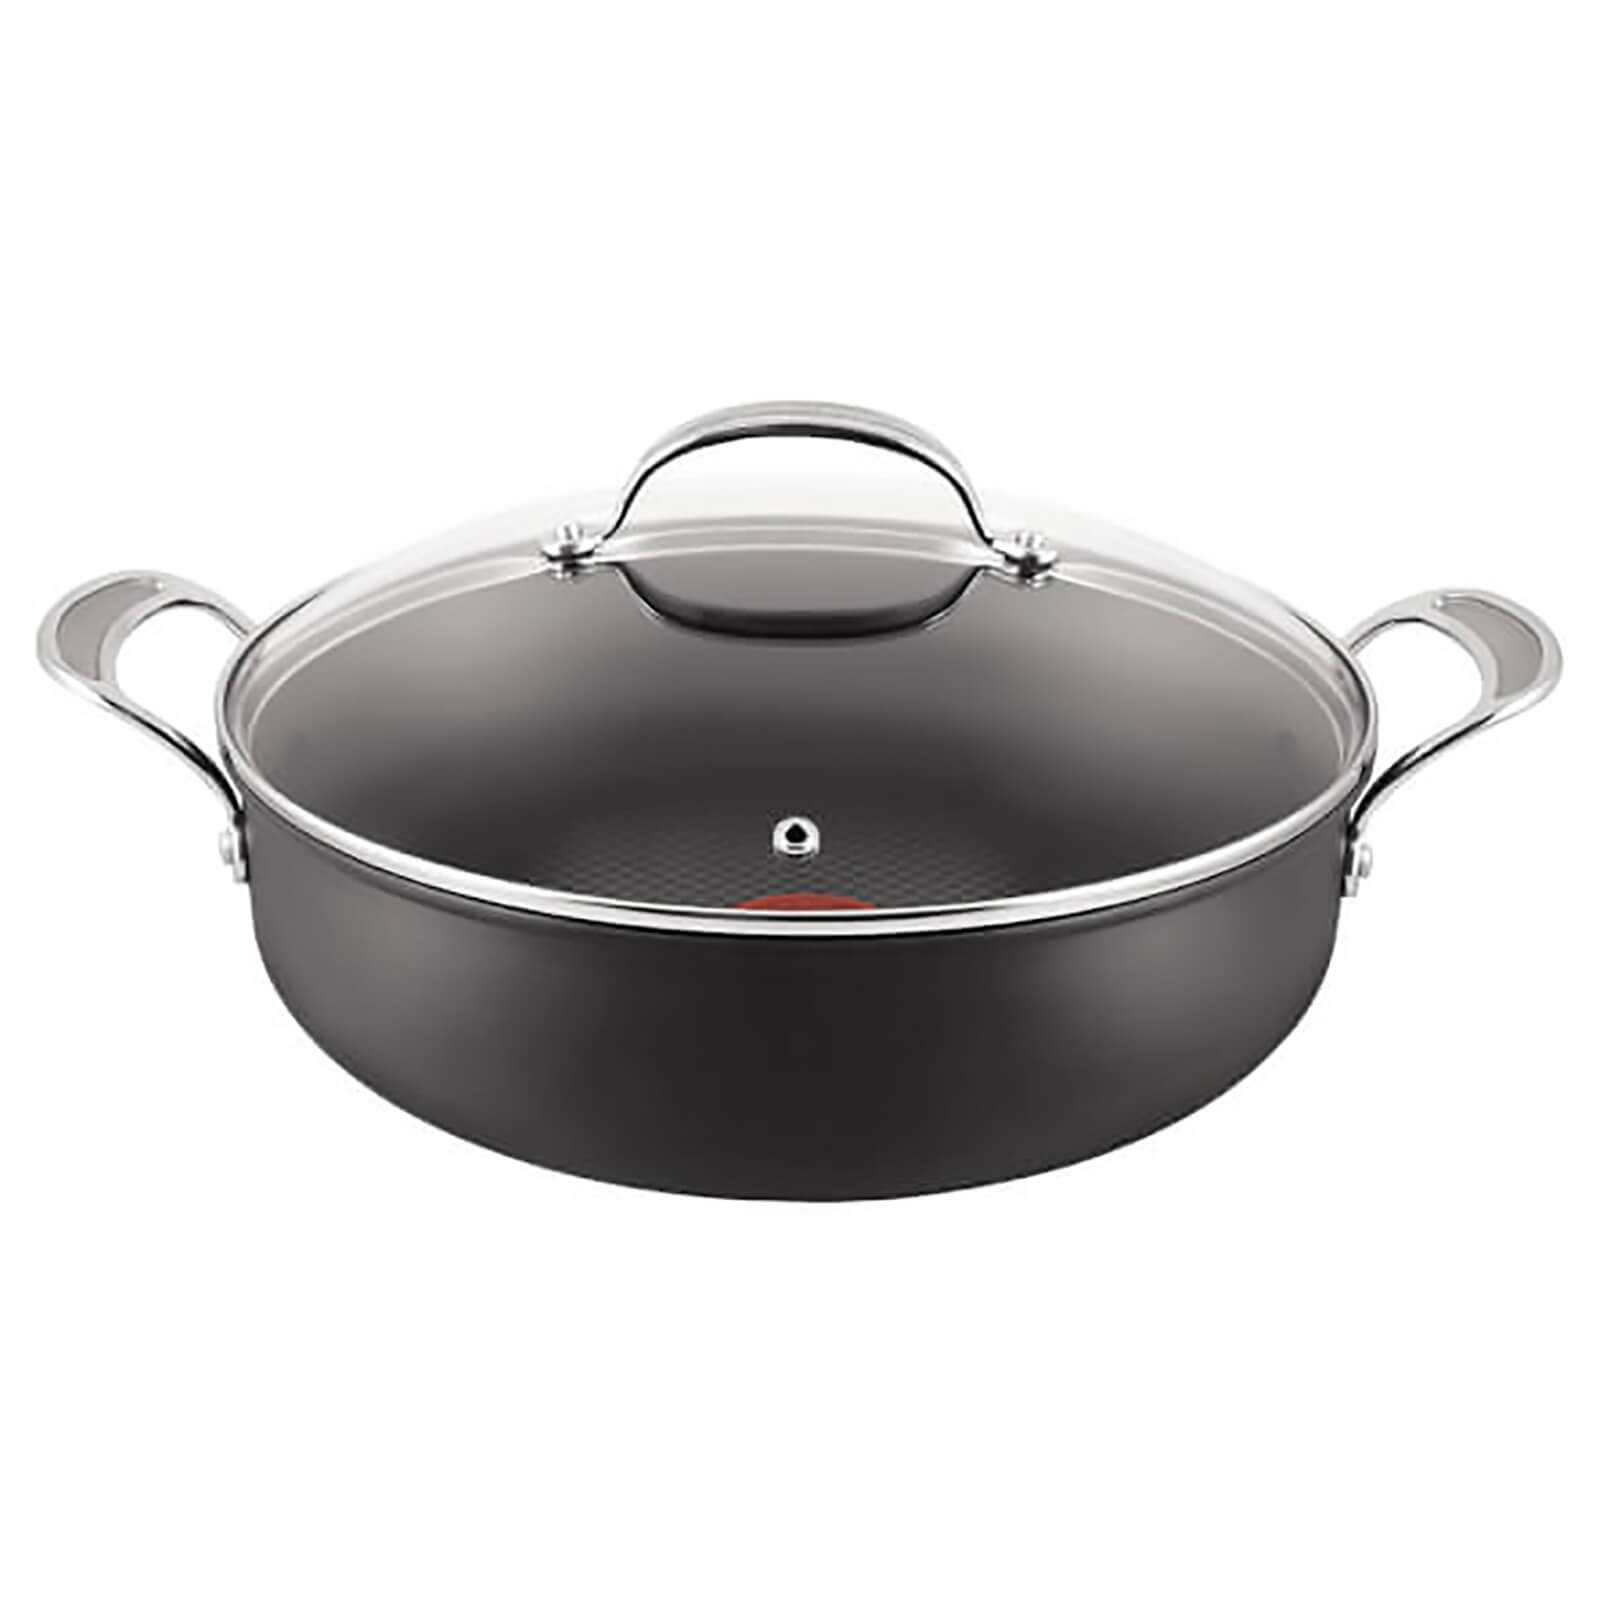 Jamie Oliver by Tefal Hard Anodised Non-Stick Shallow Pan with Lid - 30cm